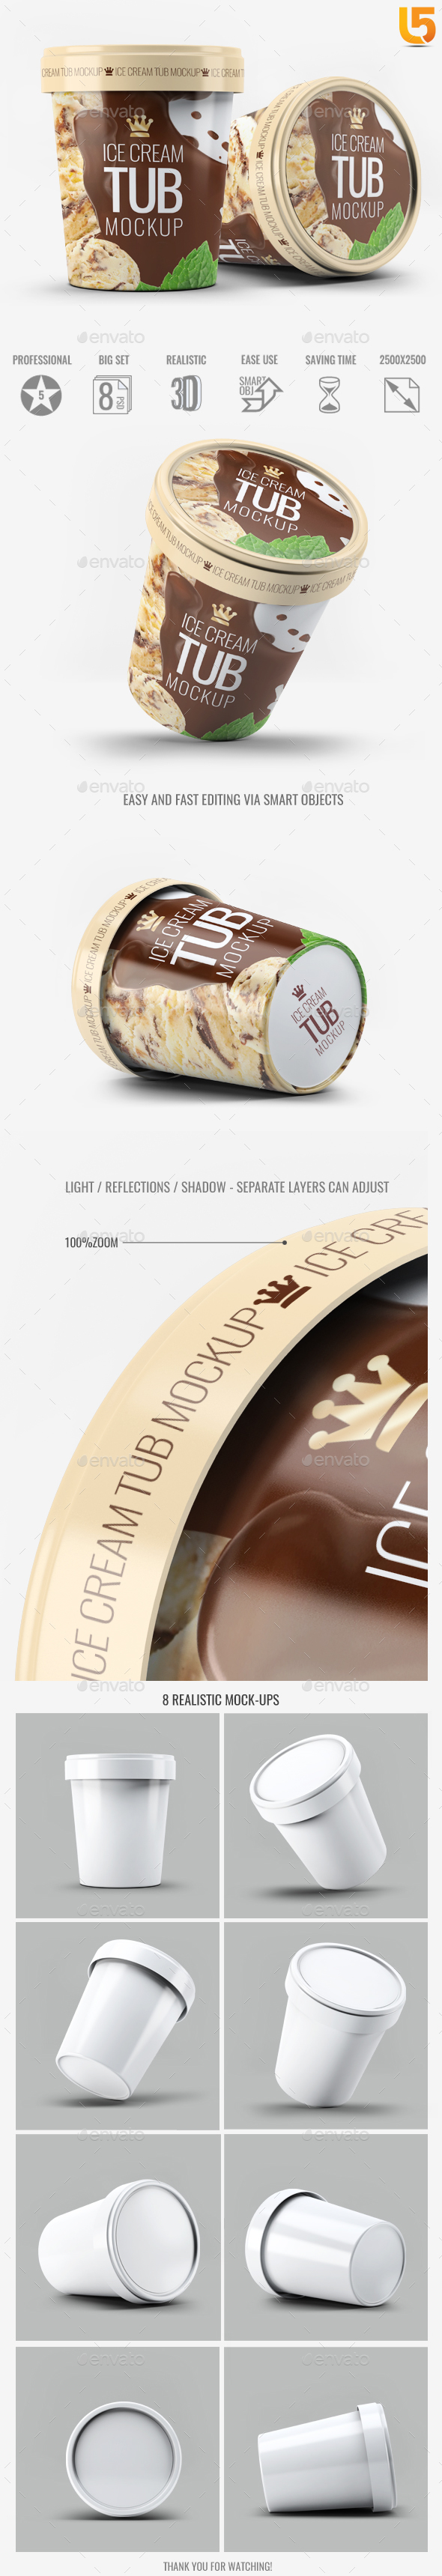 Ice Cream Tub Mock-Up - Food and Drink Packaging